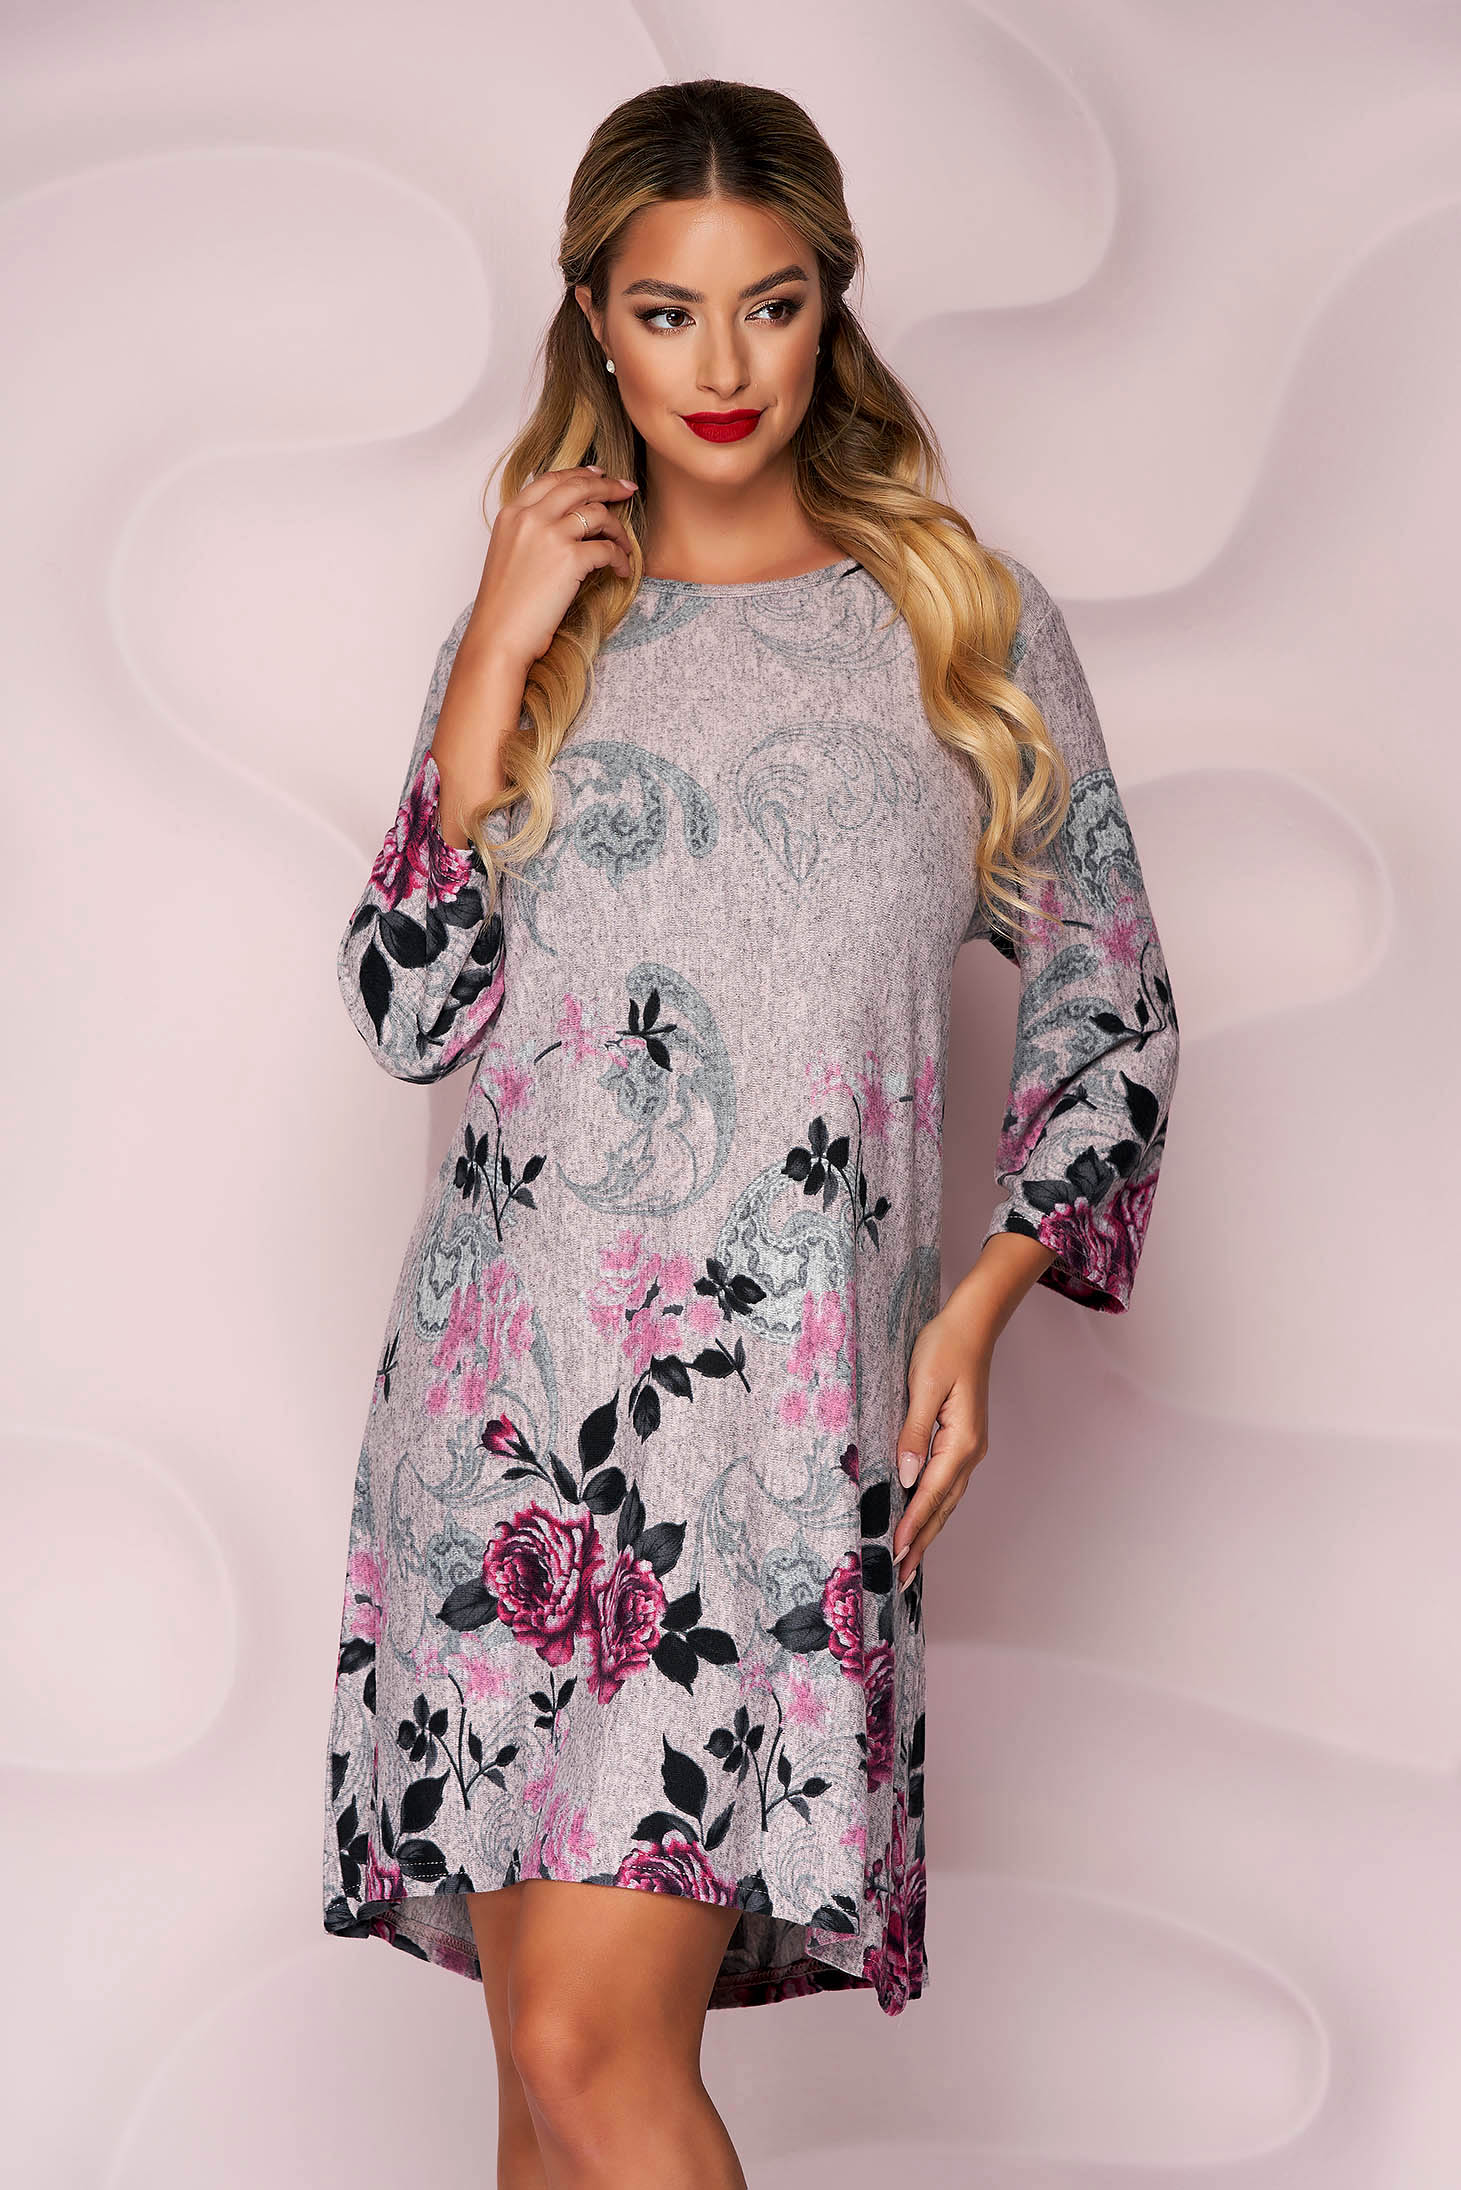 Lightpink dress straight knitted thin fabric from elastic fabric with floral print